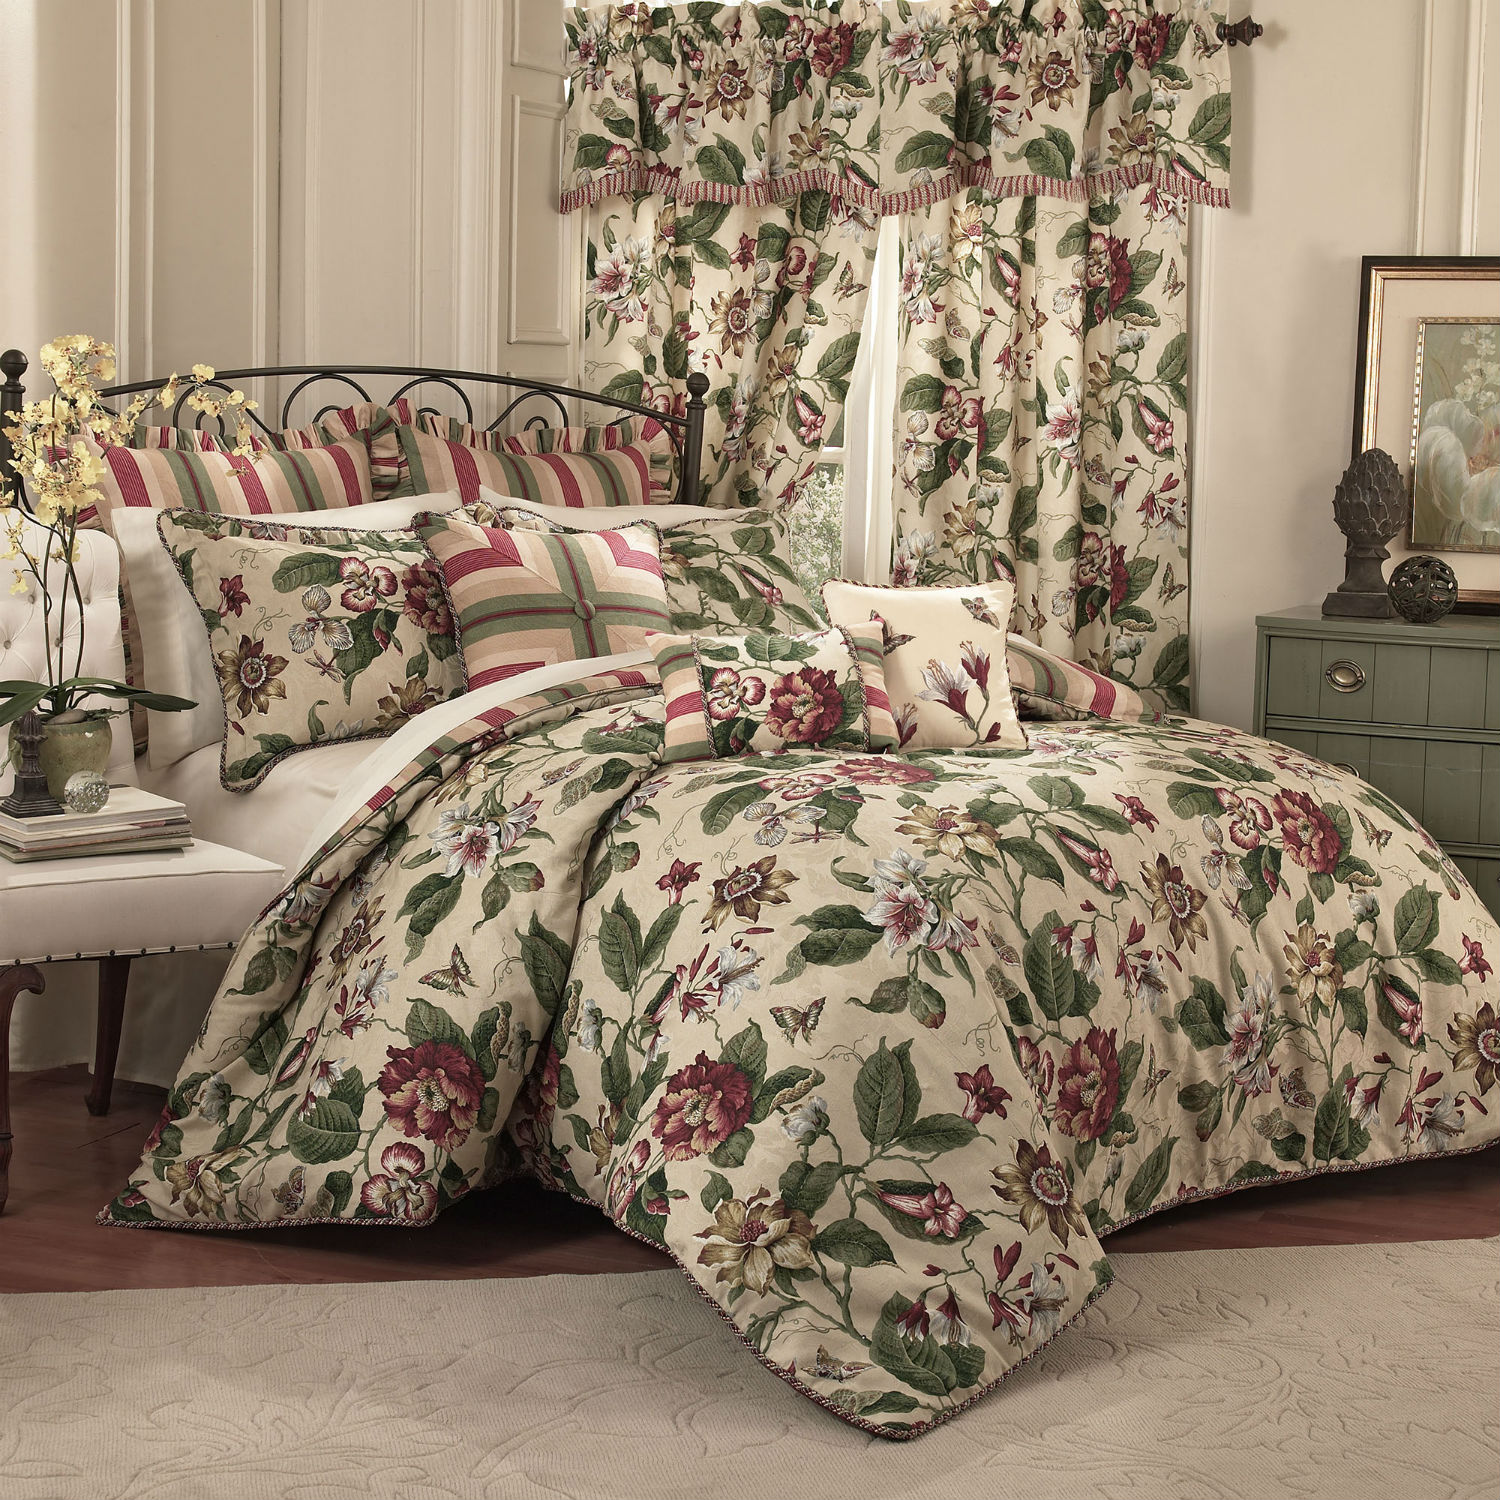 Laurel Springs By Waverly Bedding Beddingsuperstore Com